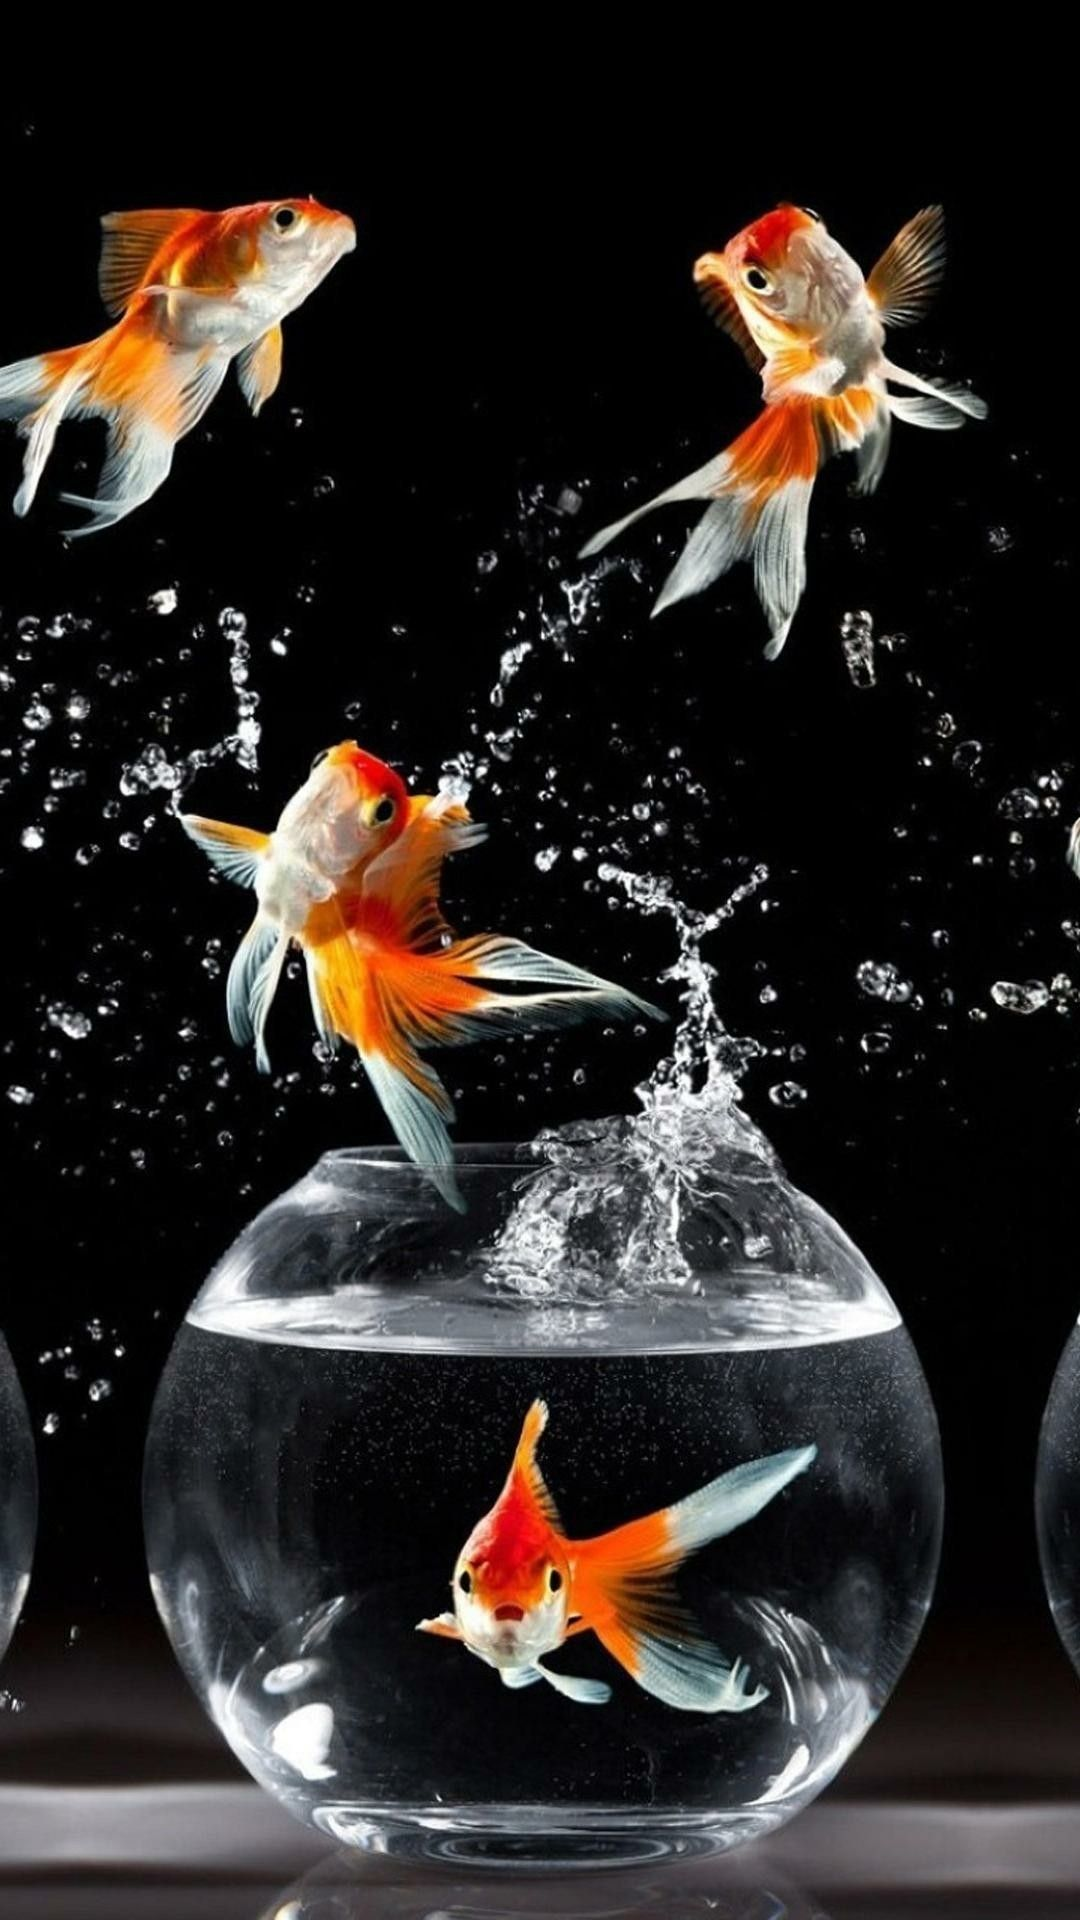 Unique Fish Wallpaper Phone Goldfish Wallpaper Fish Wallpaper Golden Fish